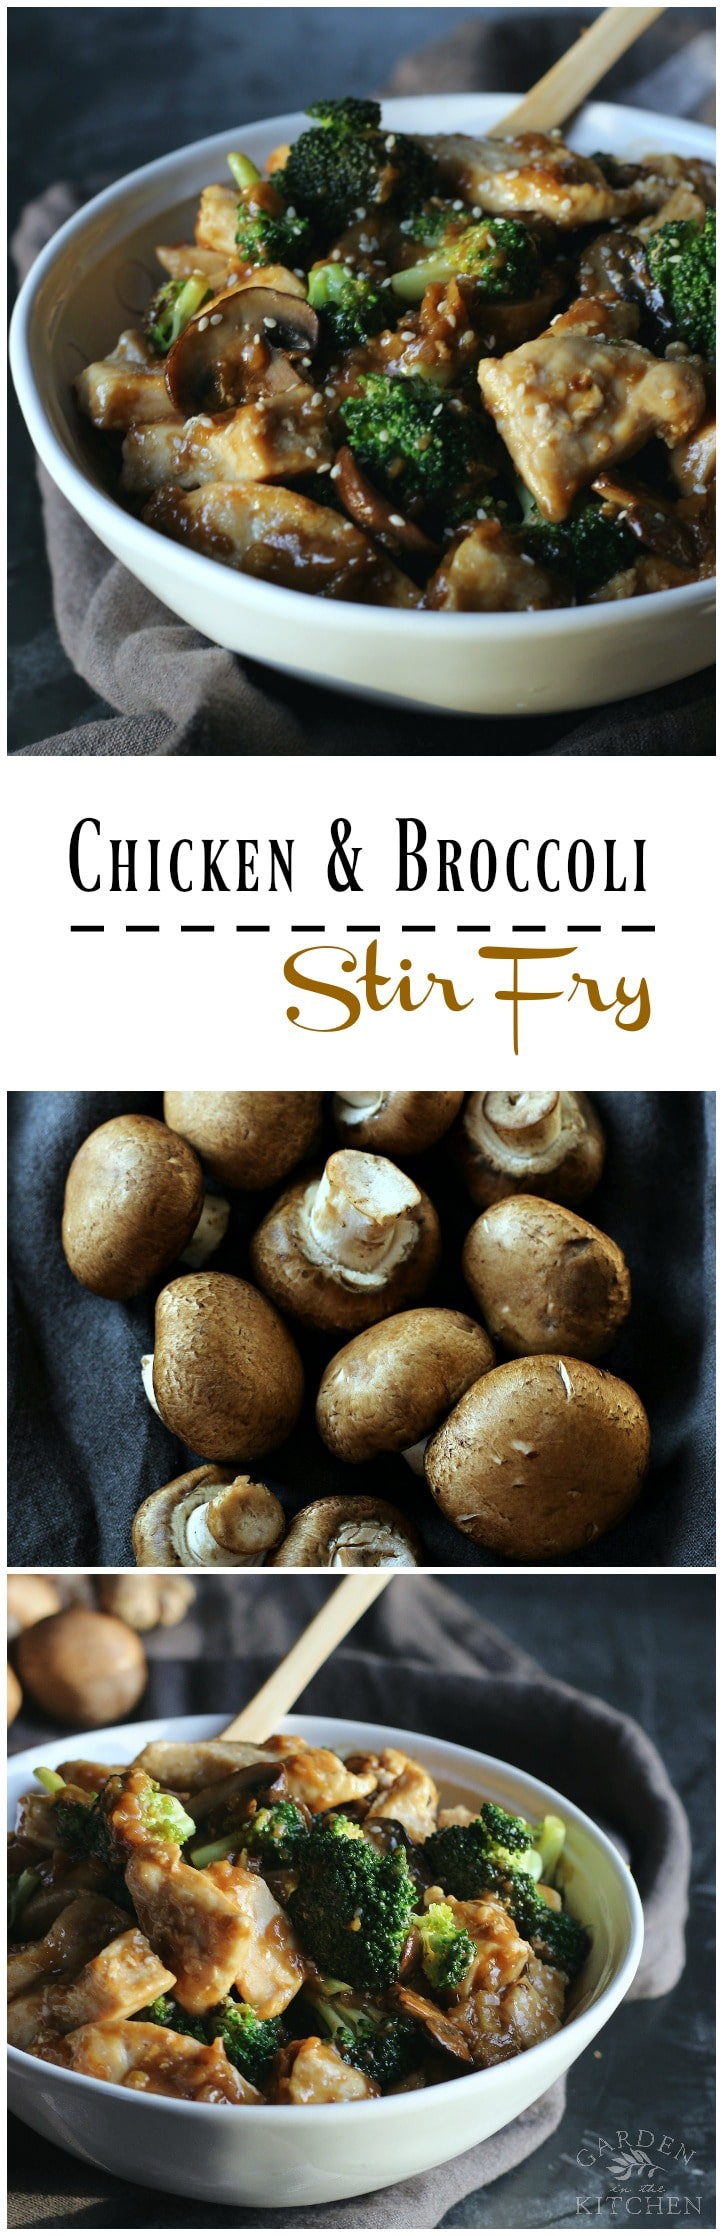 Chicken-Broccoli-Stir-Fry | gardeninthekitchen.com